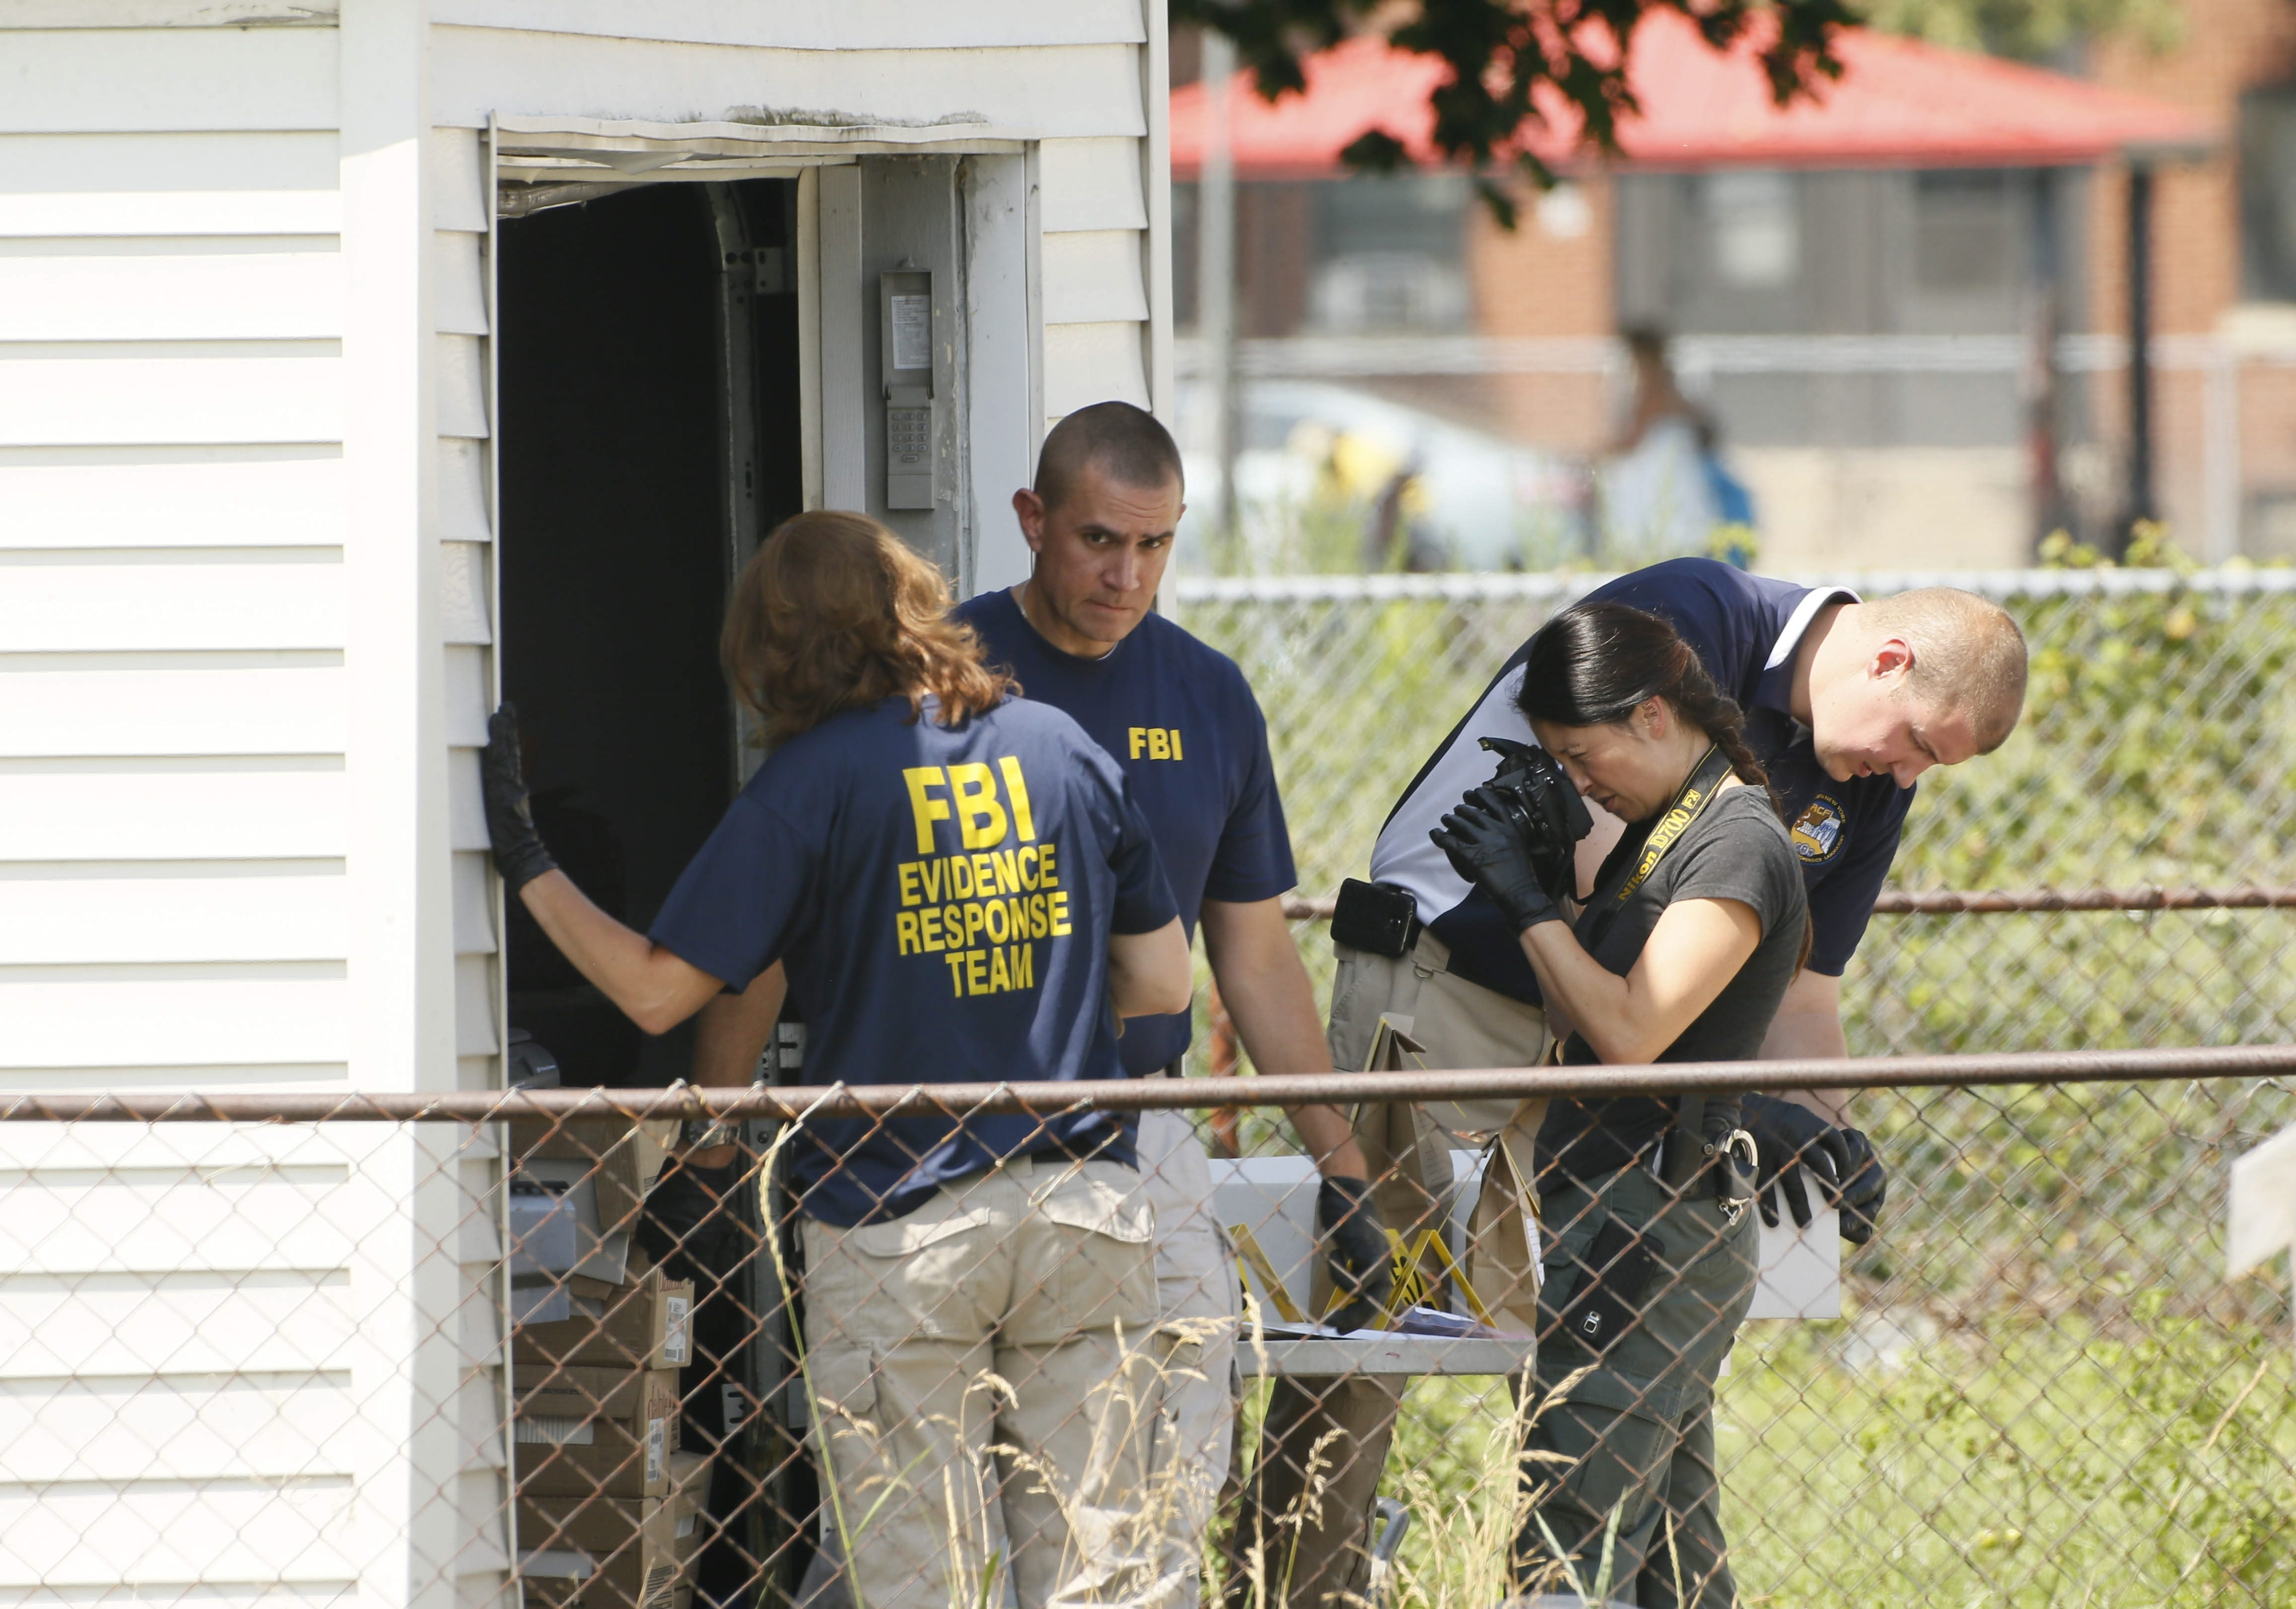 Members of the FBI Evidence Response Team collect materials in the garage of a home on Olcott Street in Lackawanna while executing a search warrant, Wednesday, July 29, 2015.  The U.S. Attorney has announced terrorism related charges against Arafat M. Magi.  (Derek Gee/Buffalo News)